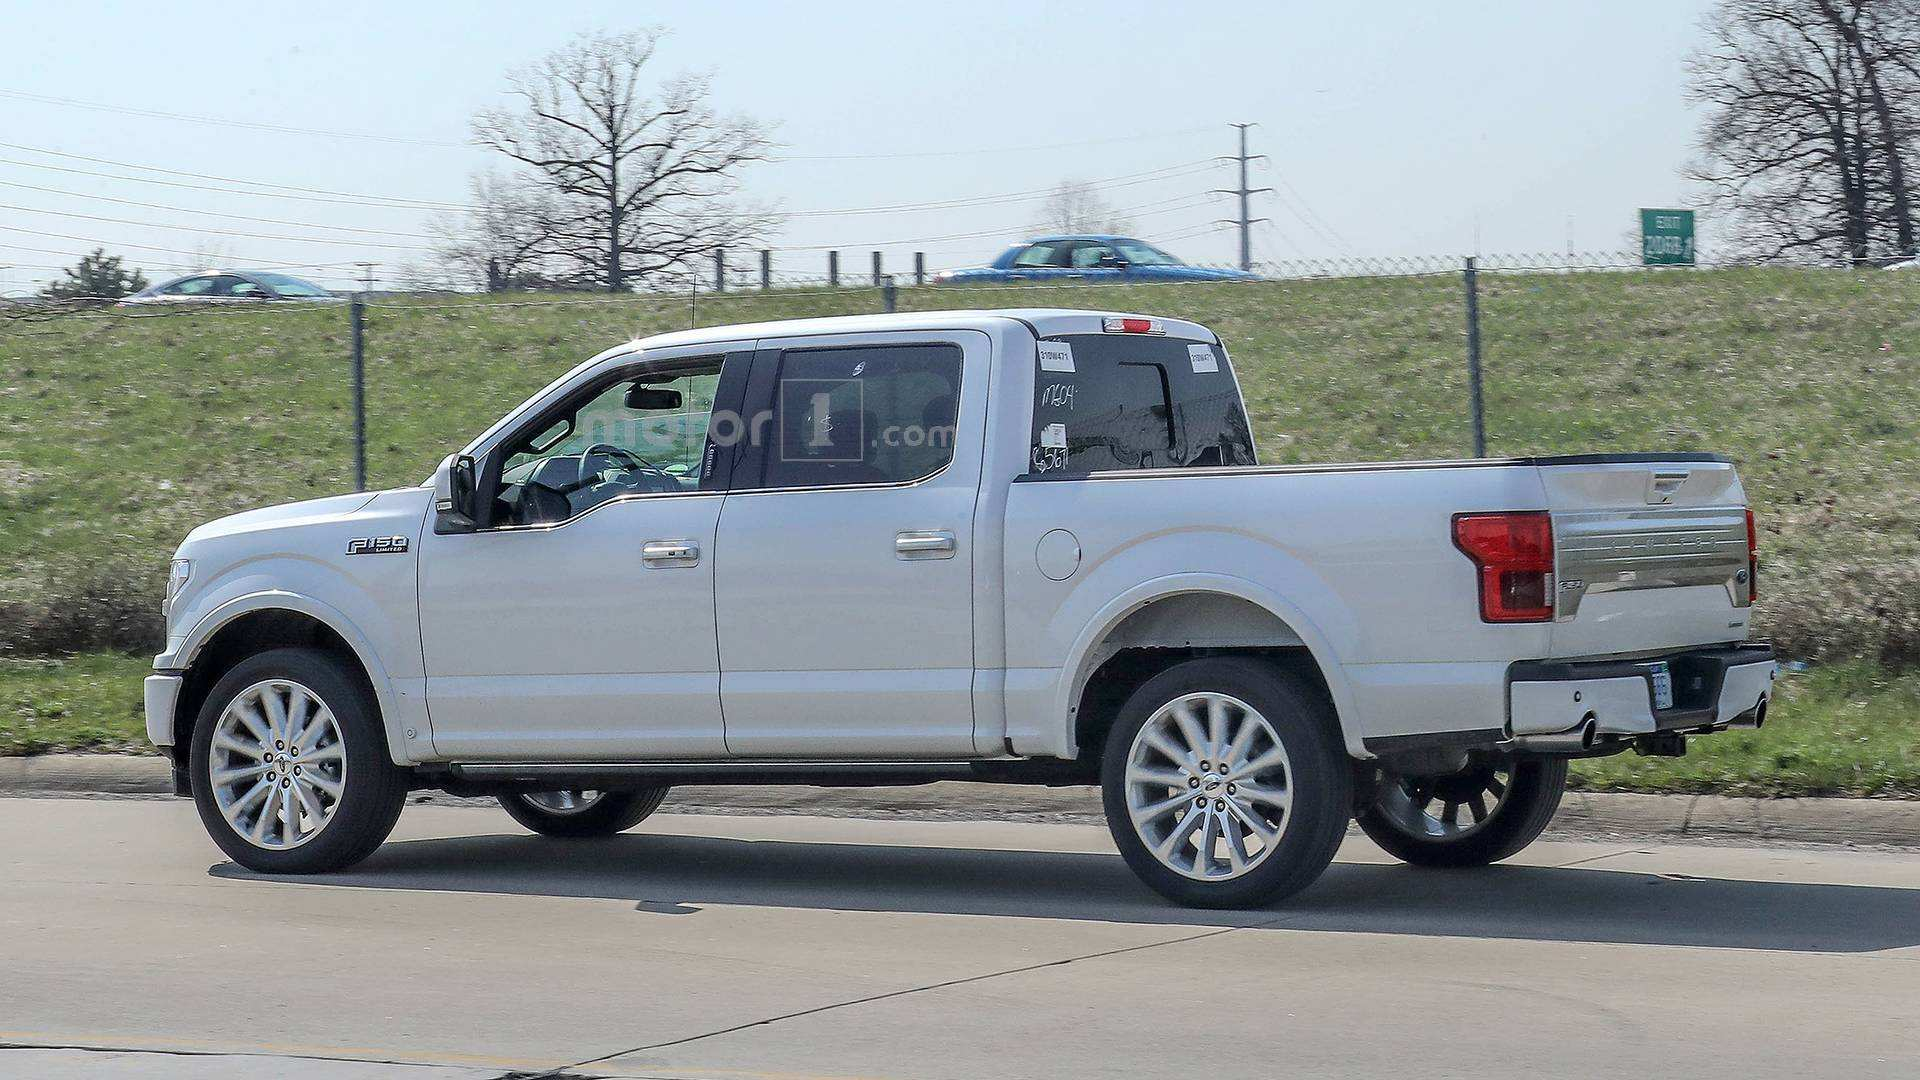 96 New 2019 Ford 150 Diesel Configurations for 2019 Ford 150 Diesel